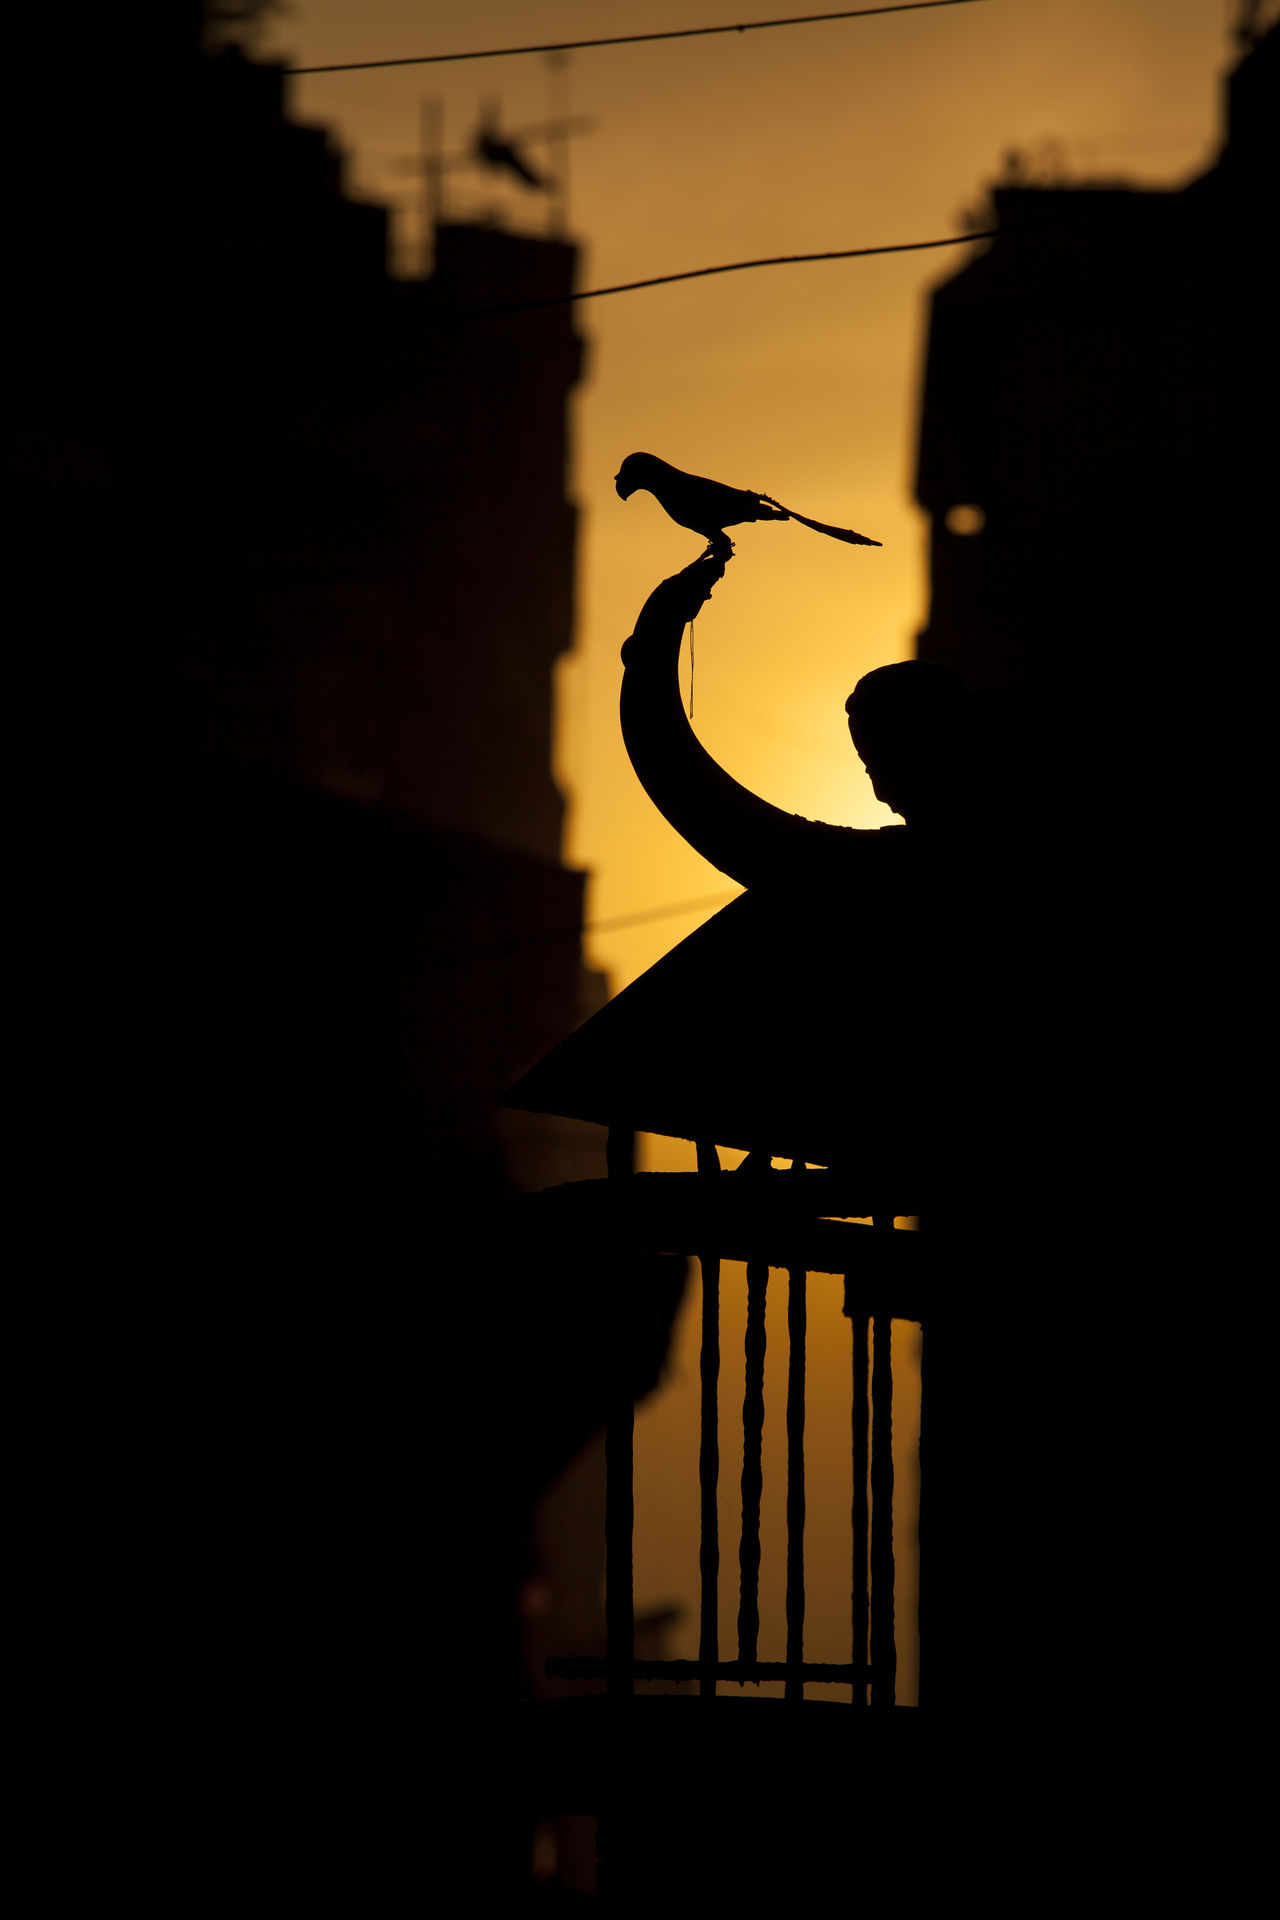 Silhouette of bird sculpture of a Hindu temple at Kathmandu, Nepal during evening. Animal Architecture Art Backlight Bird Evening Evening Light Kathmandu Nepal Sculpture Silhouette Sky Sunset Wanderlust Warm